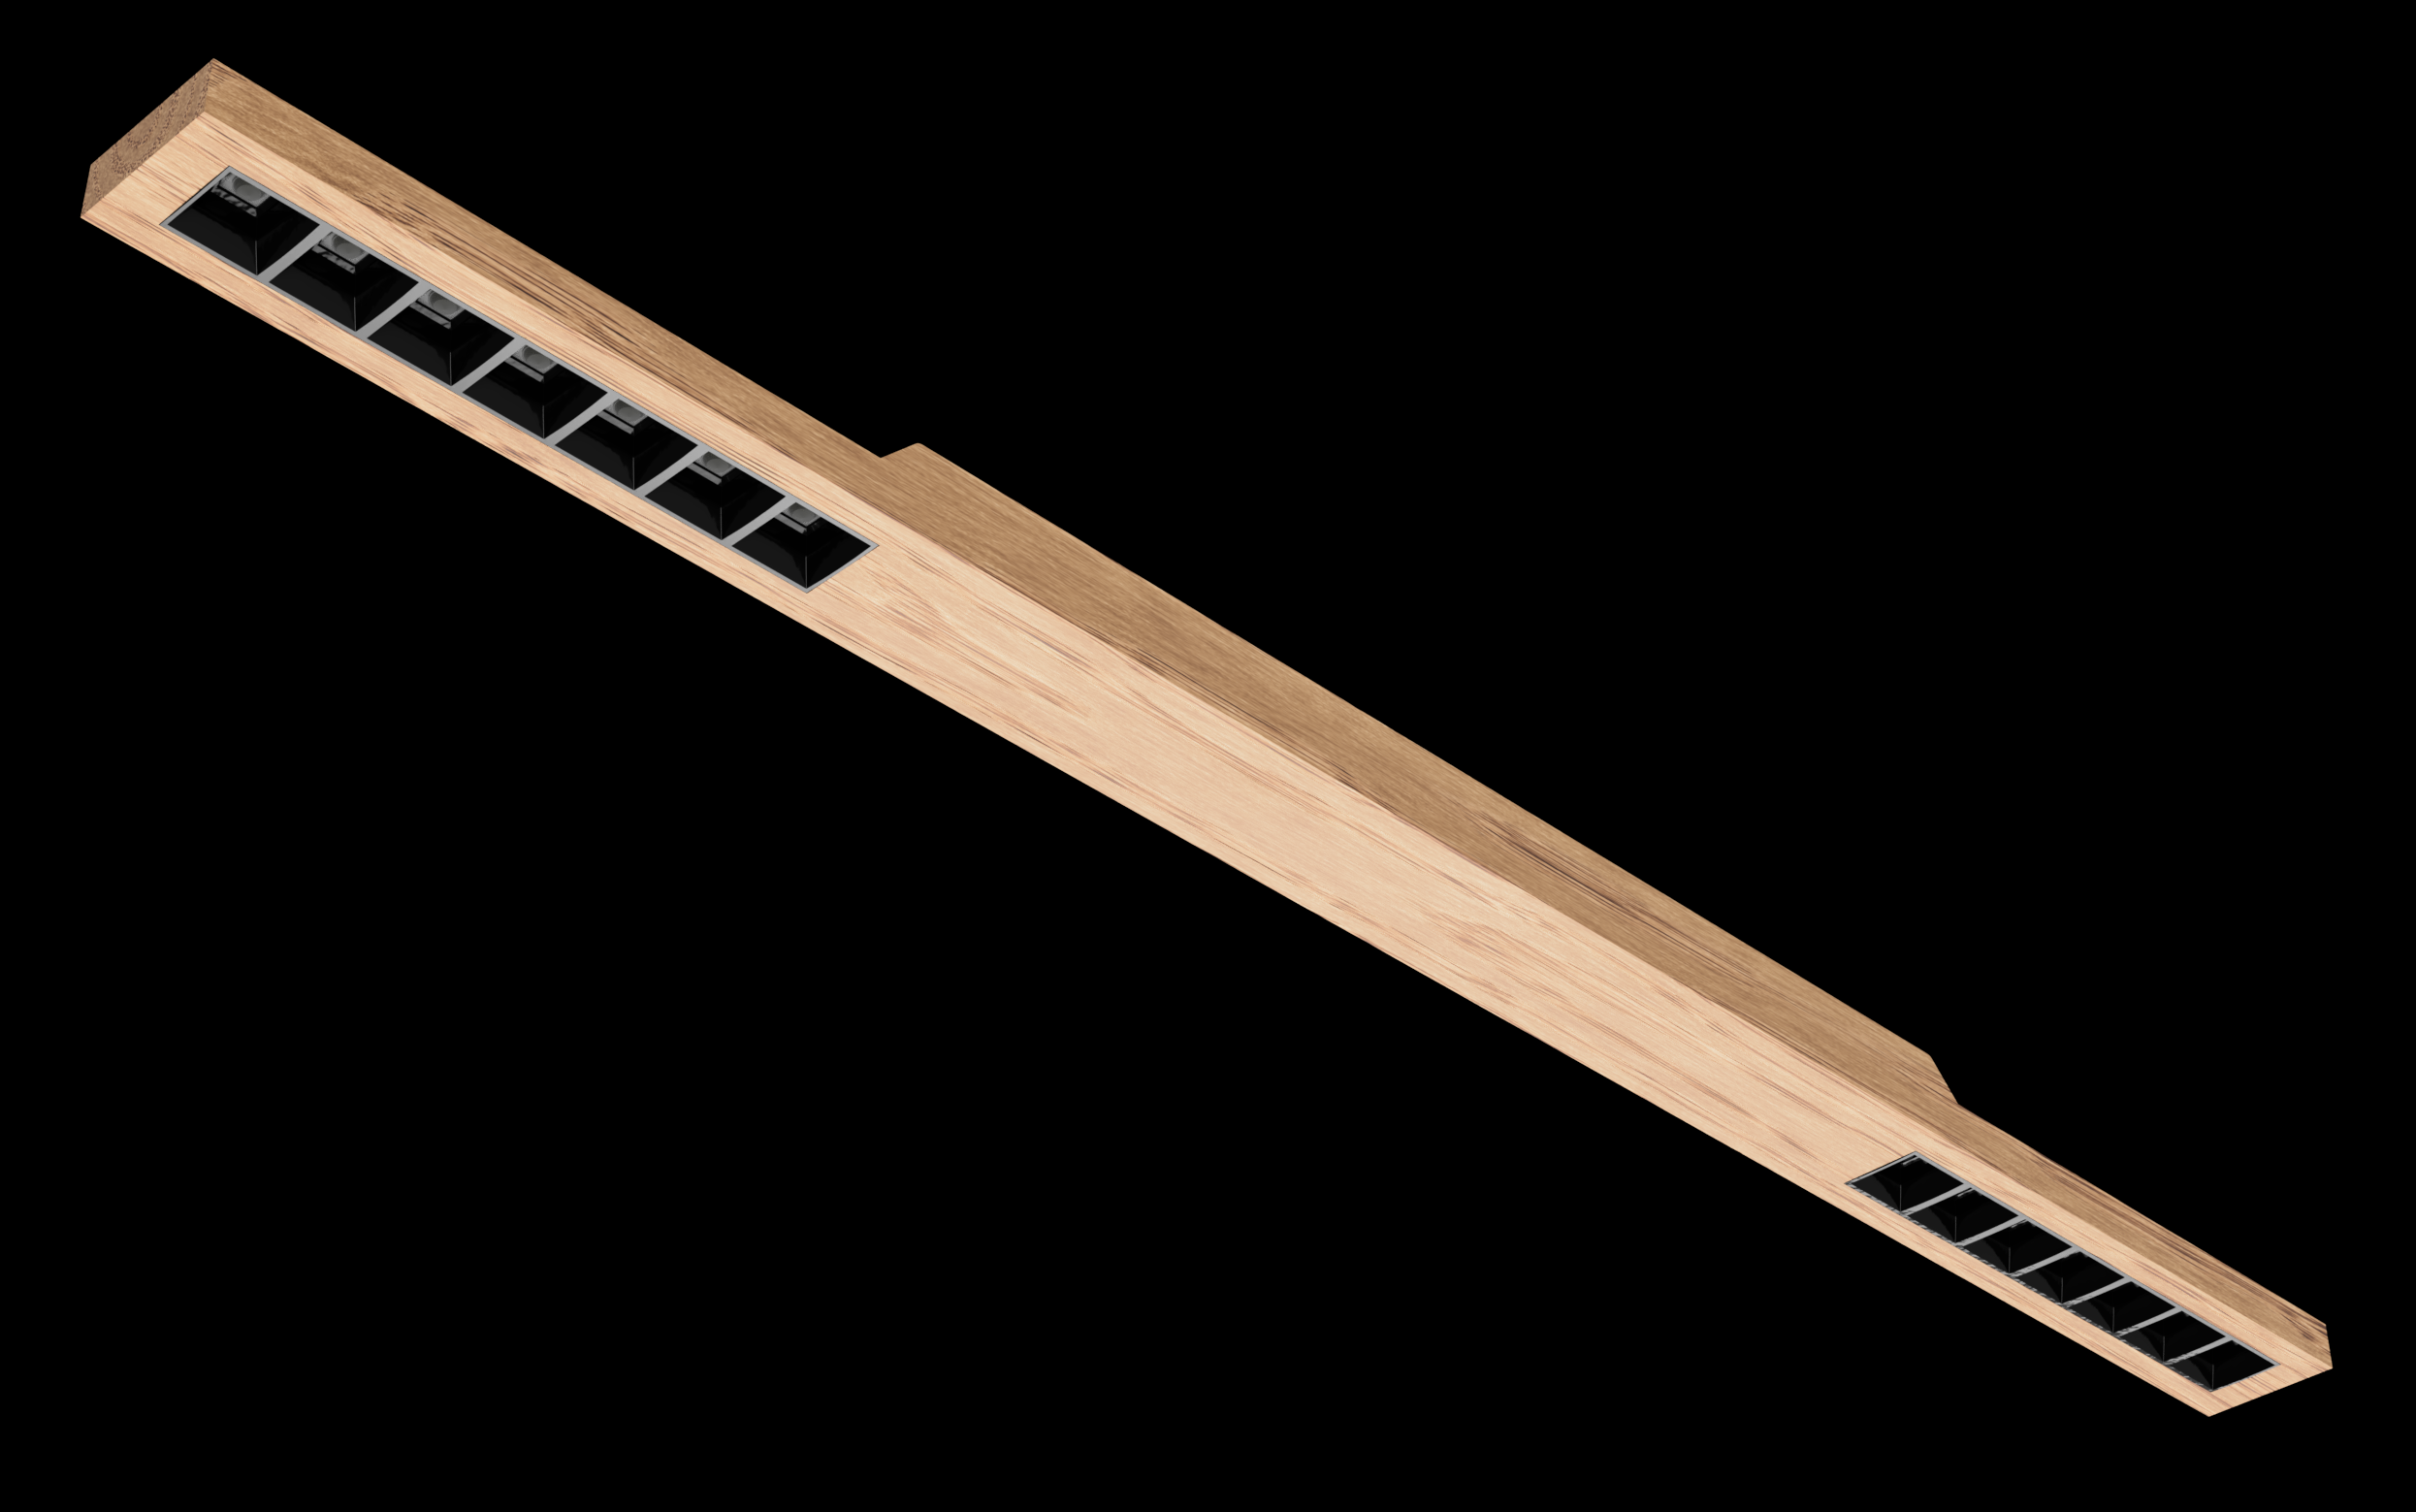 Wood Linear LED 70 - Wood LED Wood